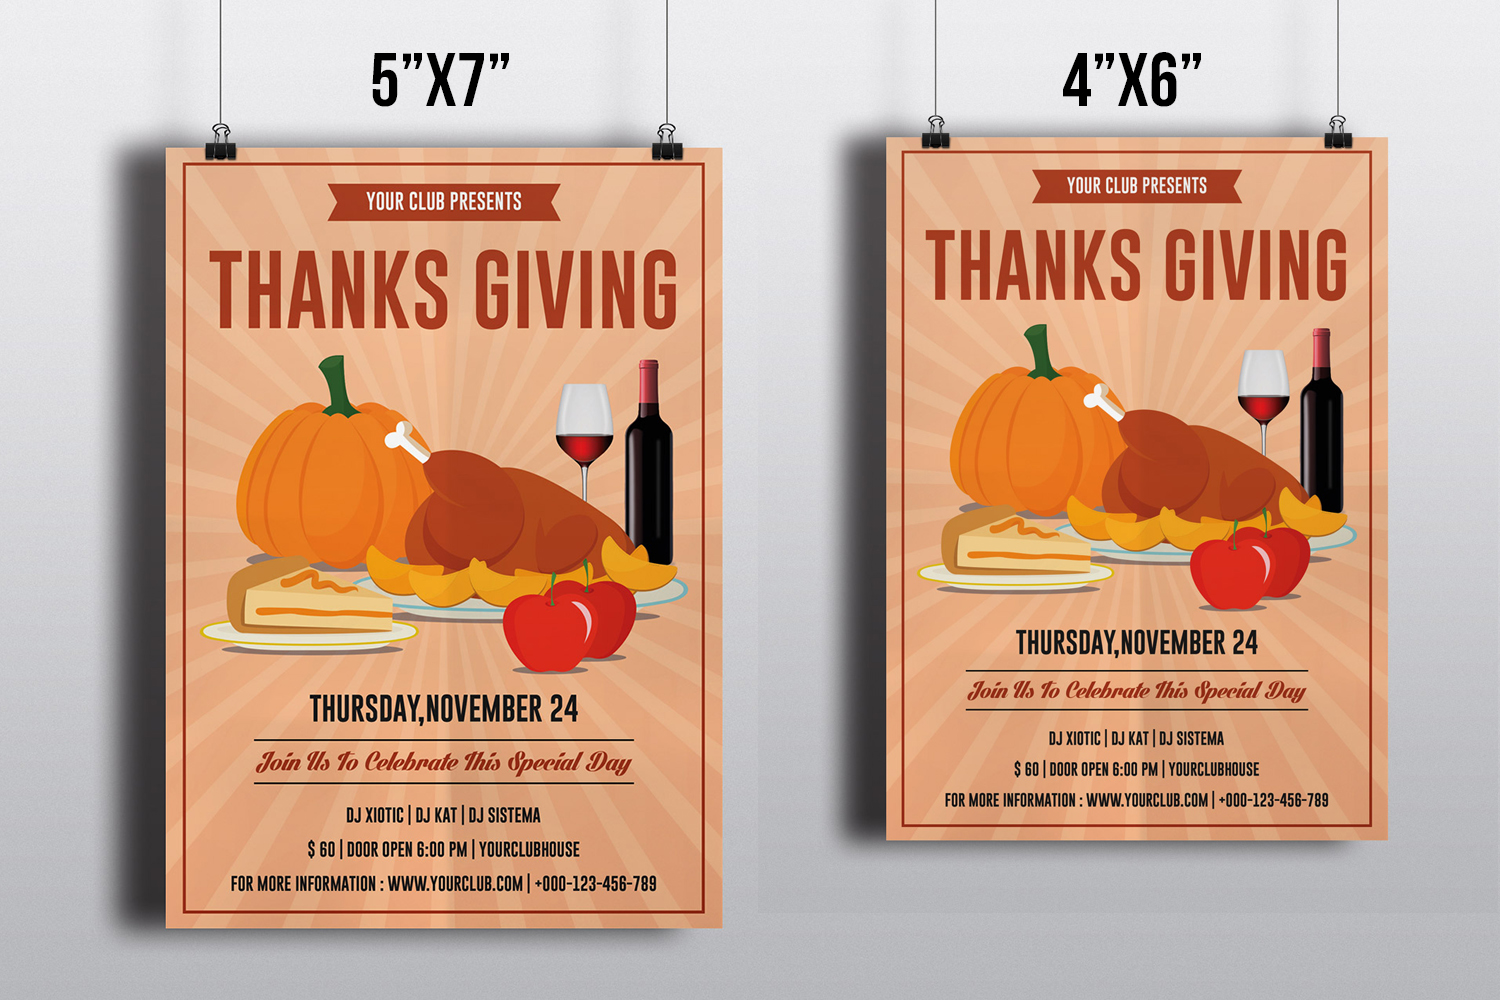 Invitation Flyer Templates On Behance - Thanksgiving party invitation templates